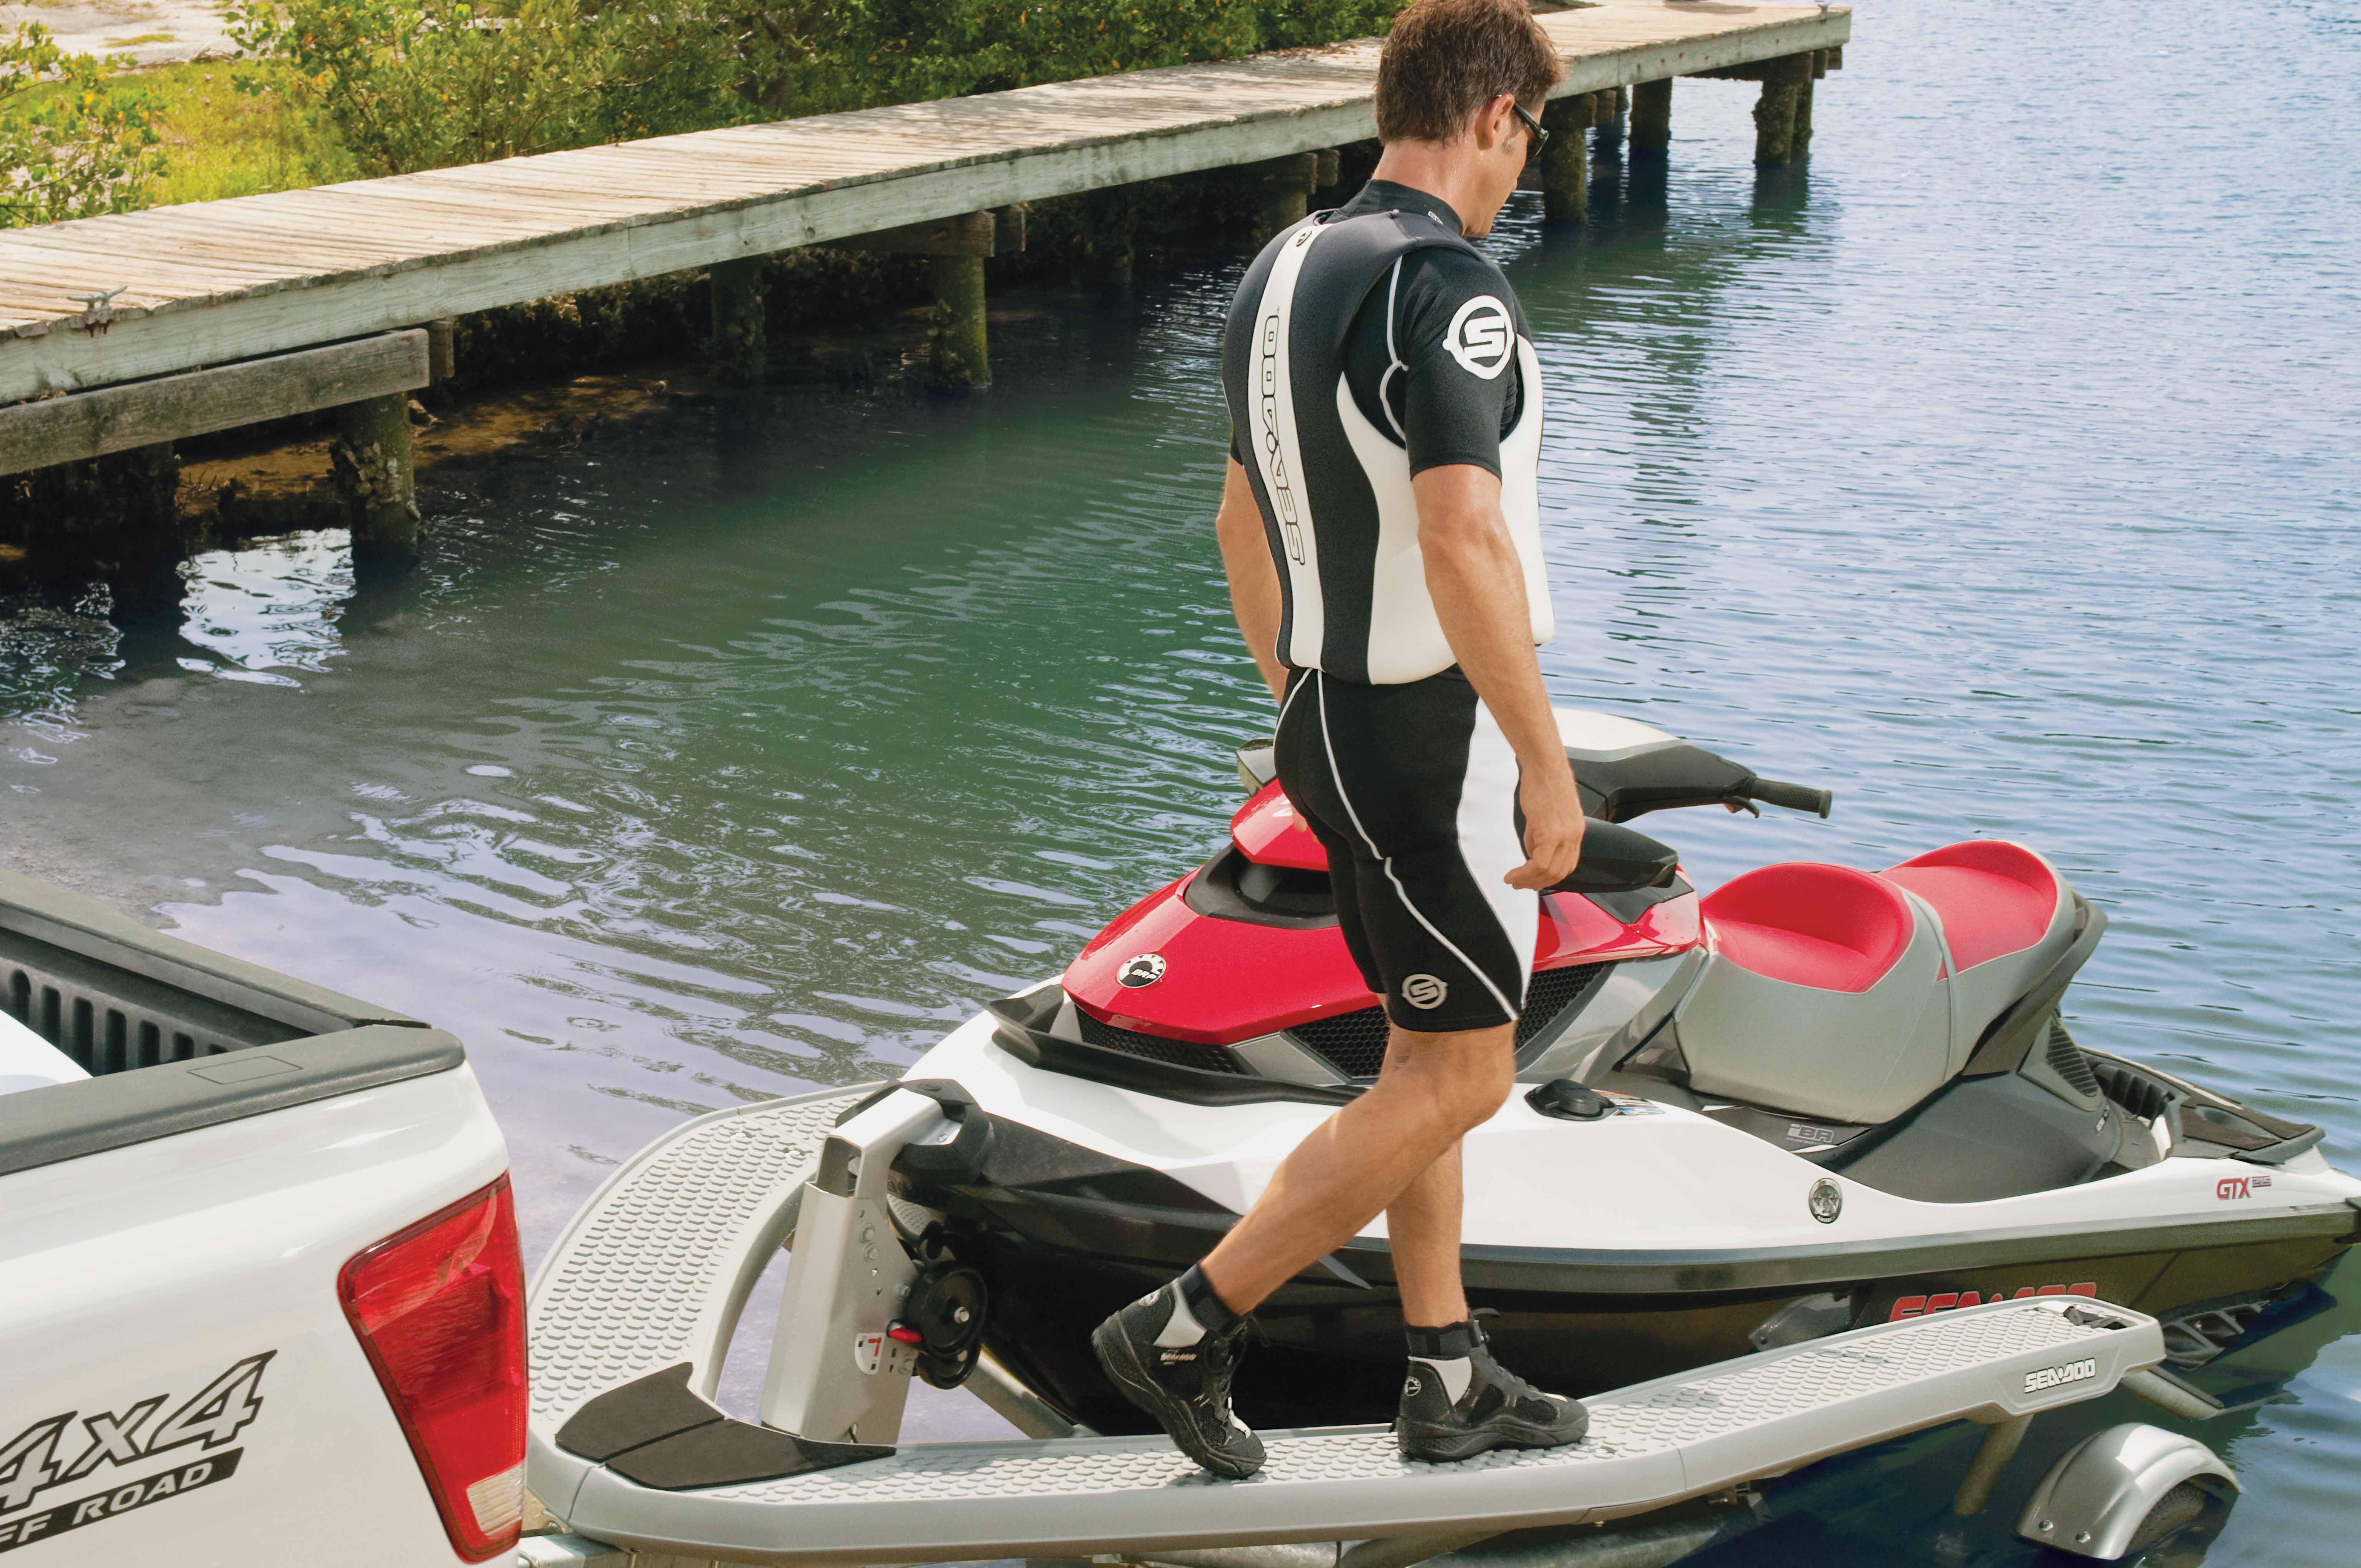 High Performance Sea Doo Onboard